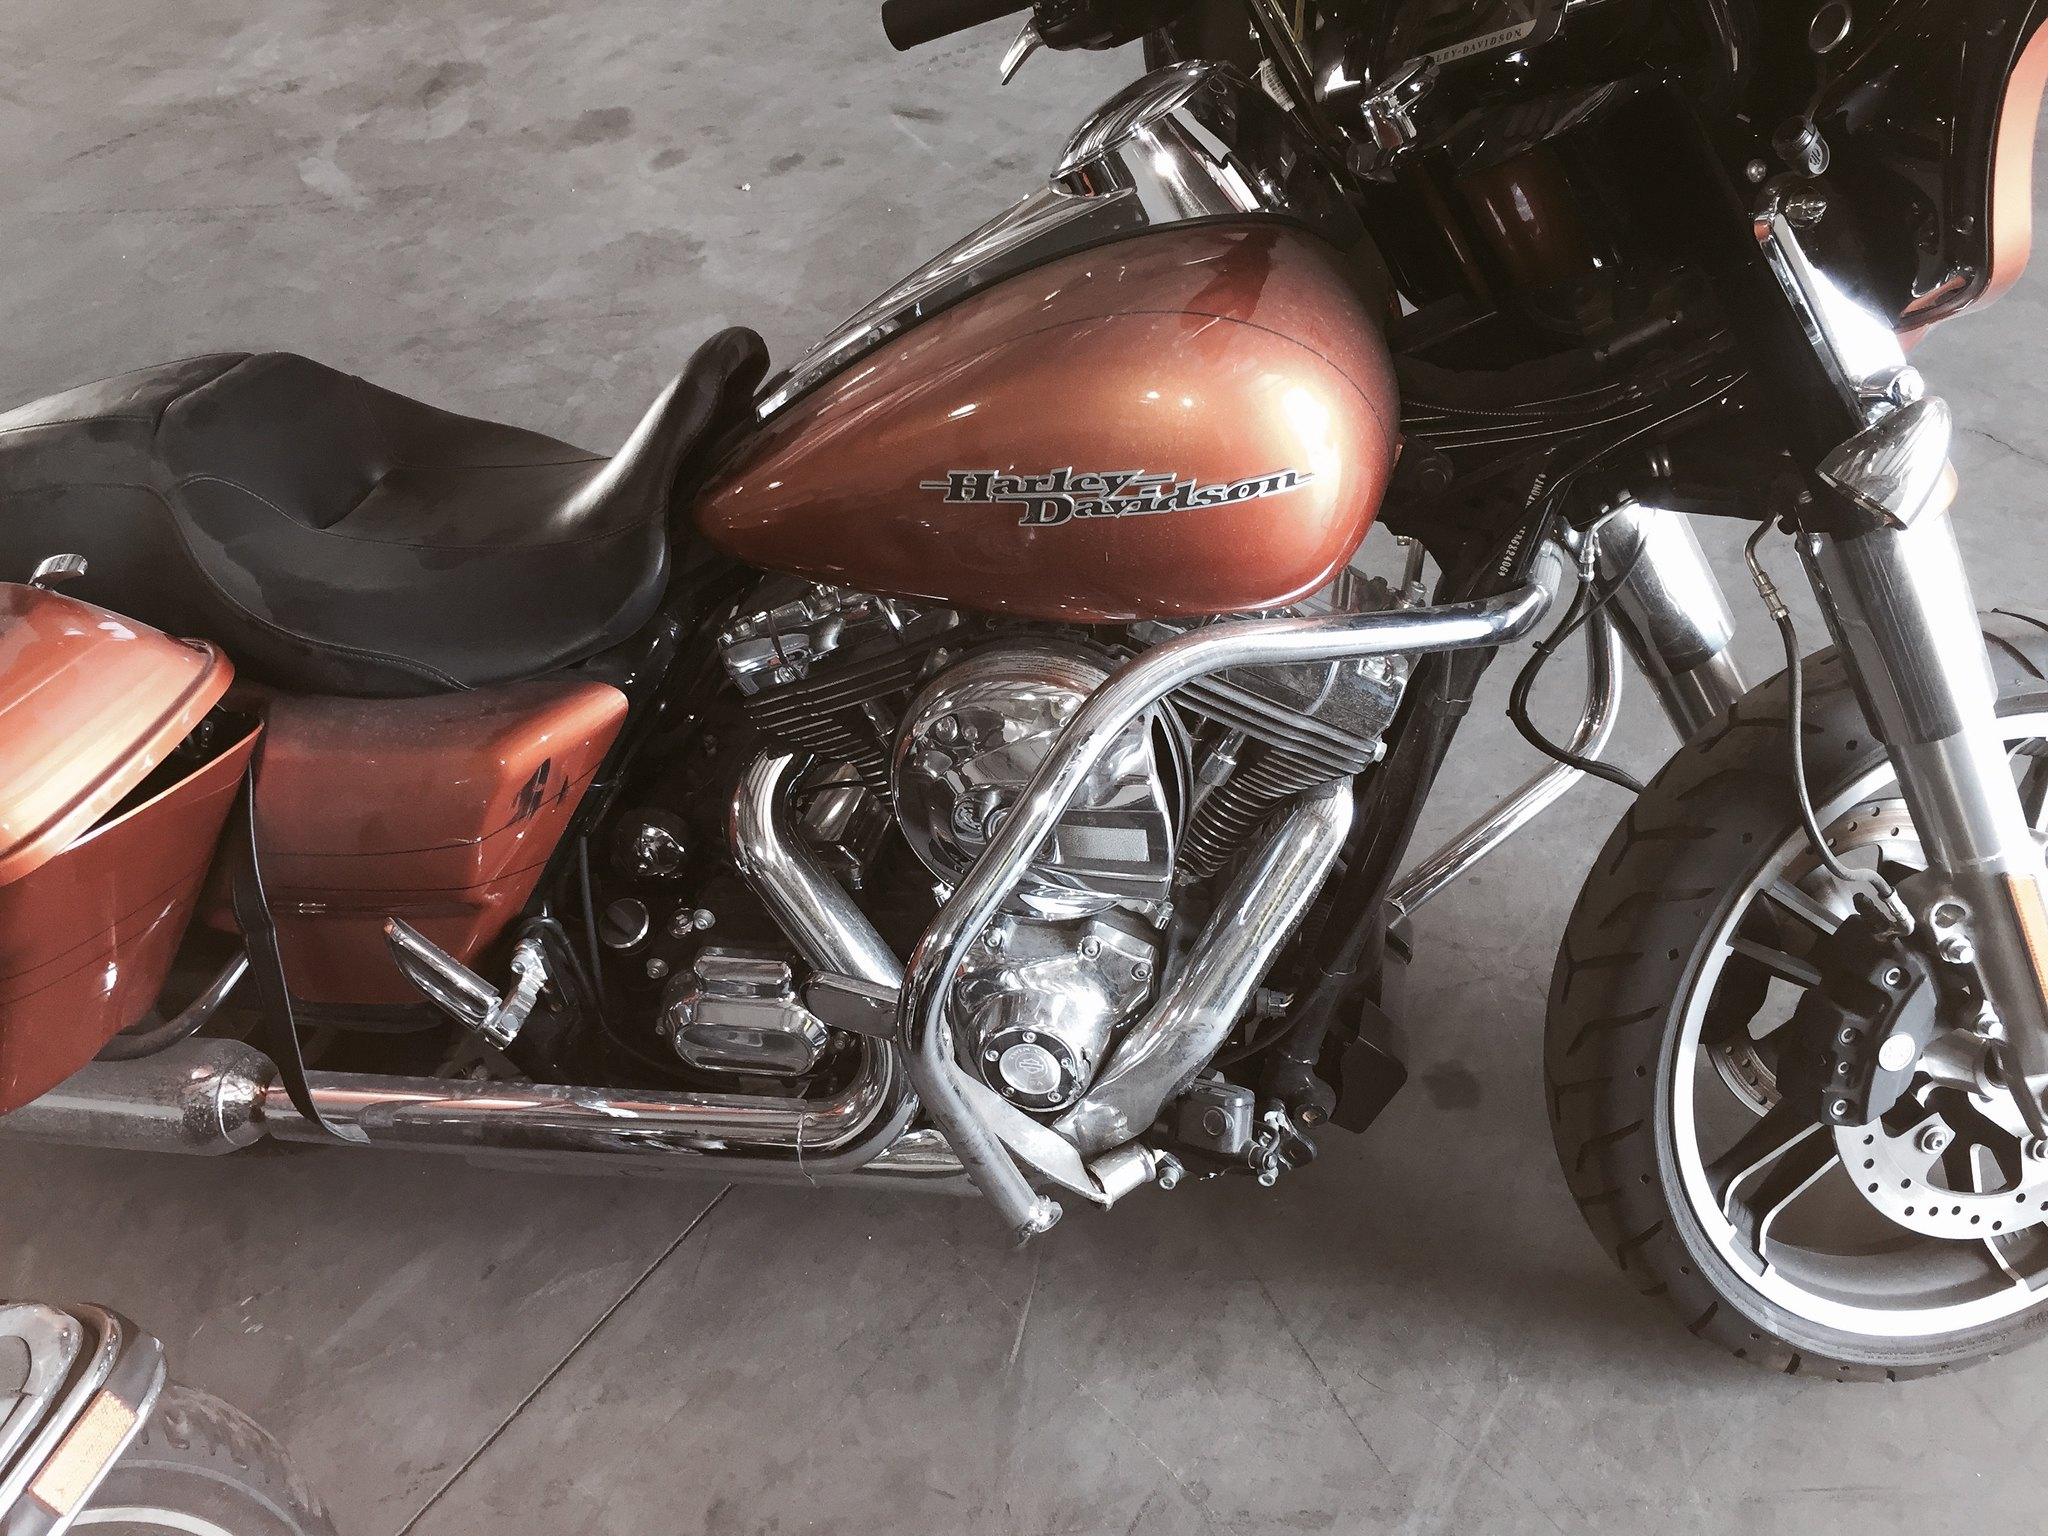 Street Glide owners thread | Page 74 | V-Twin Forum